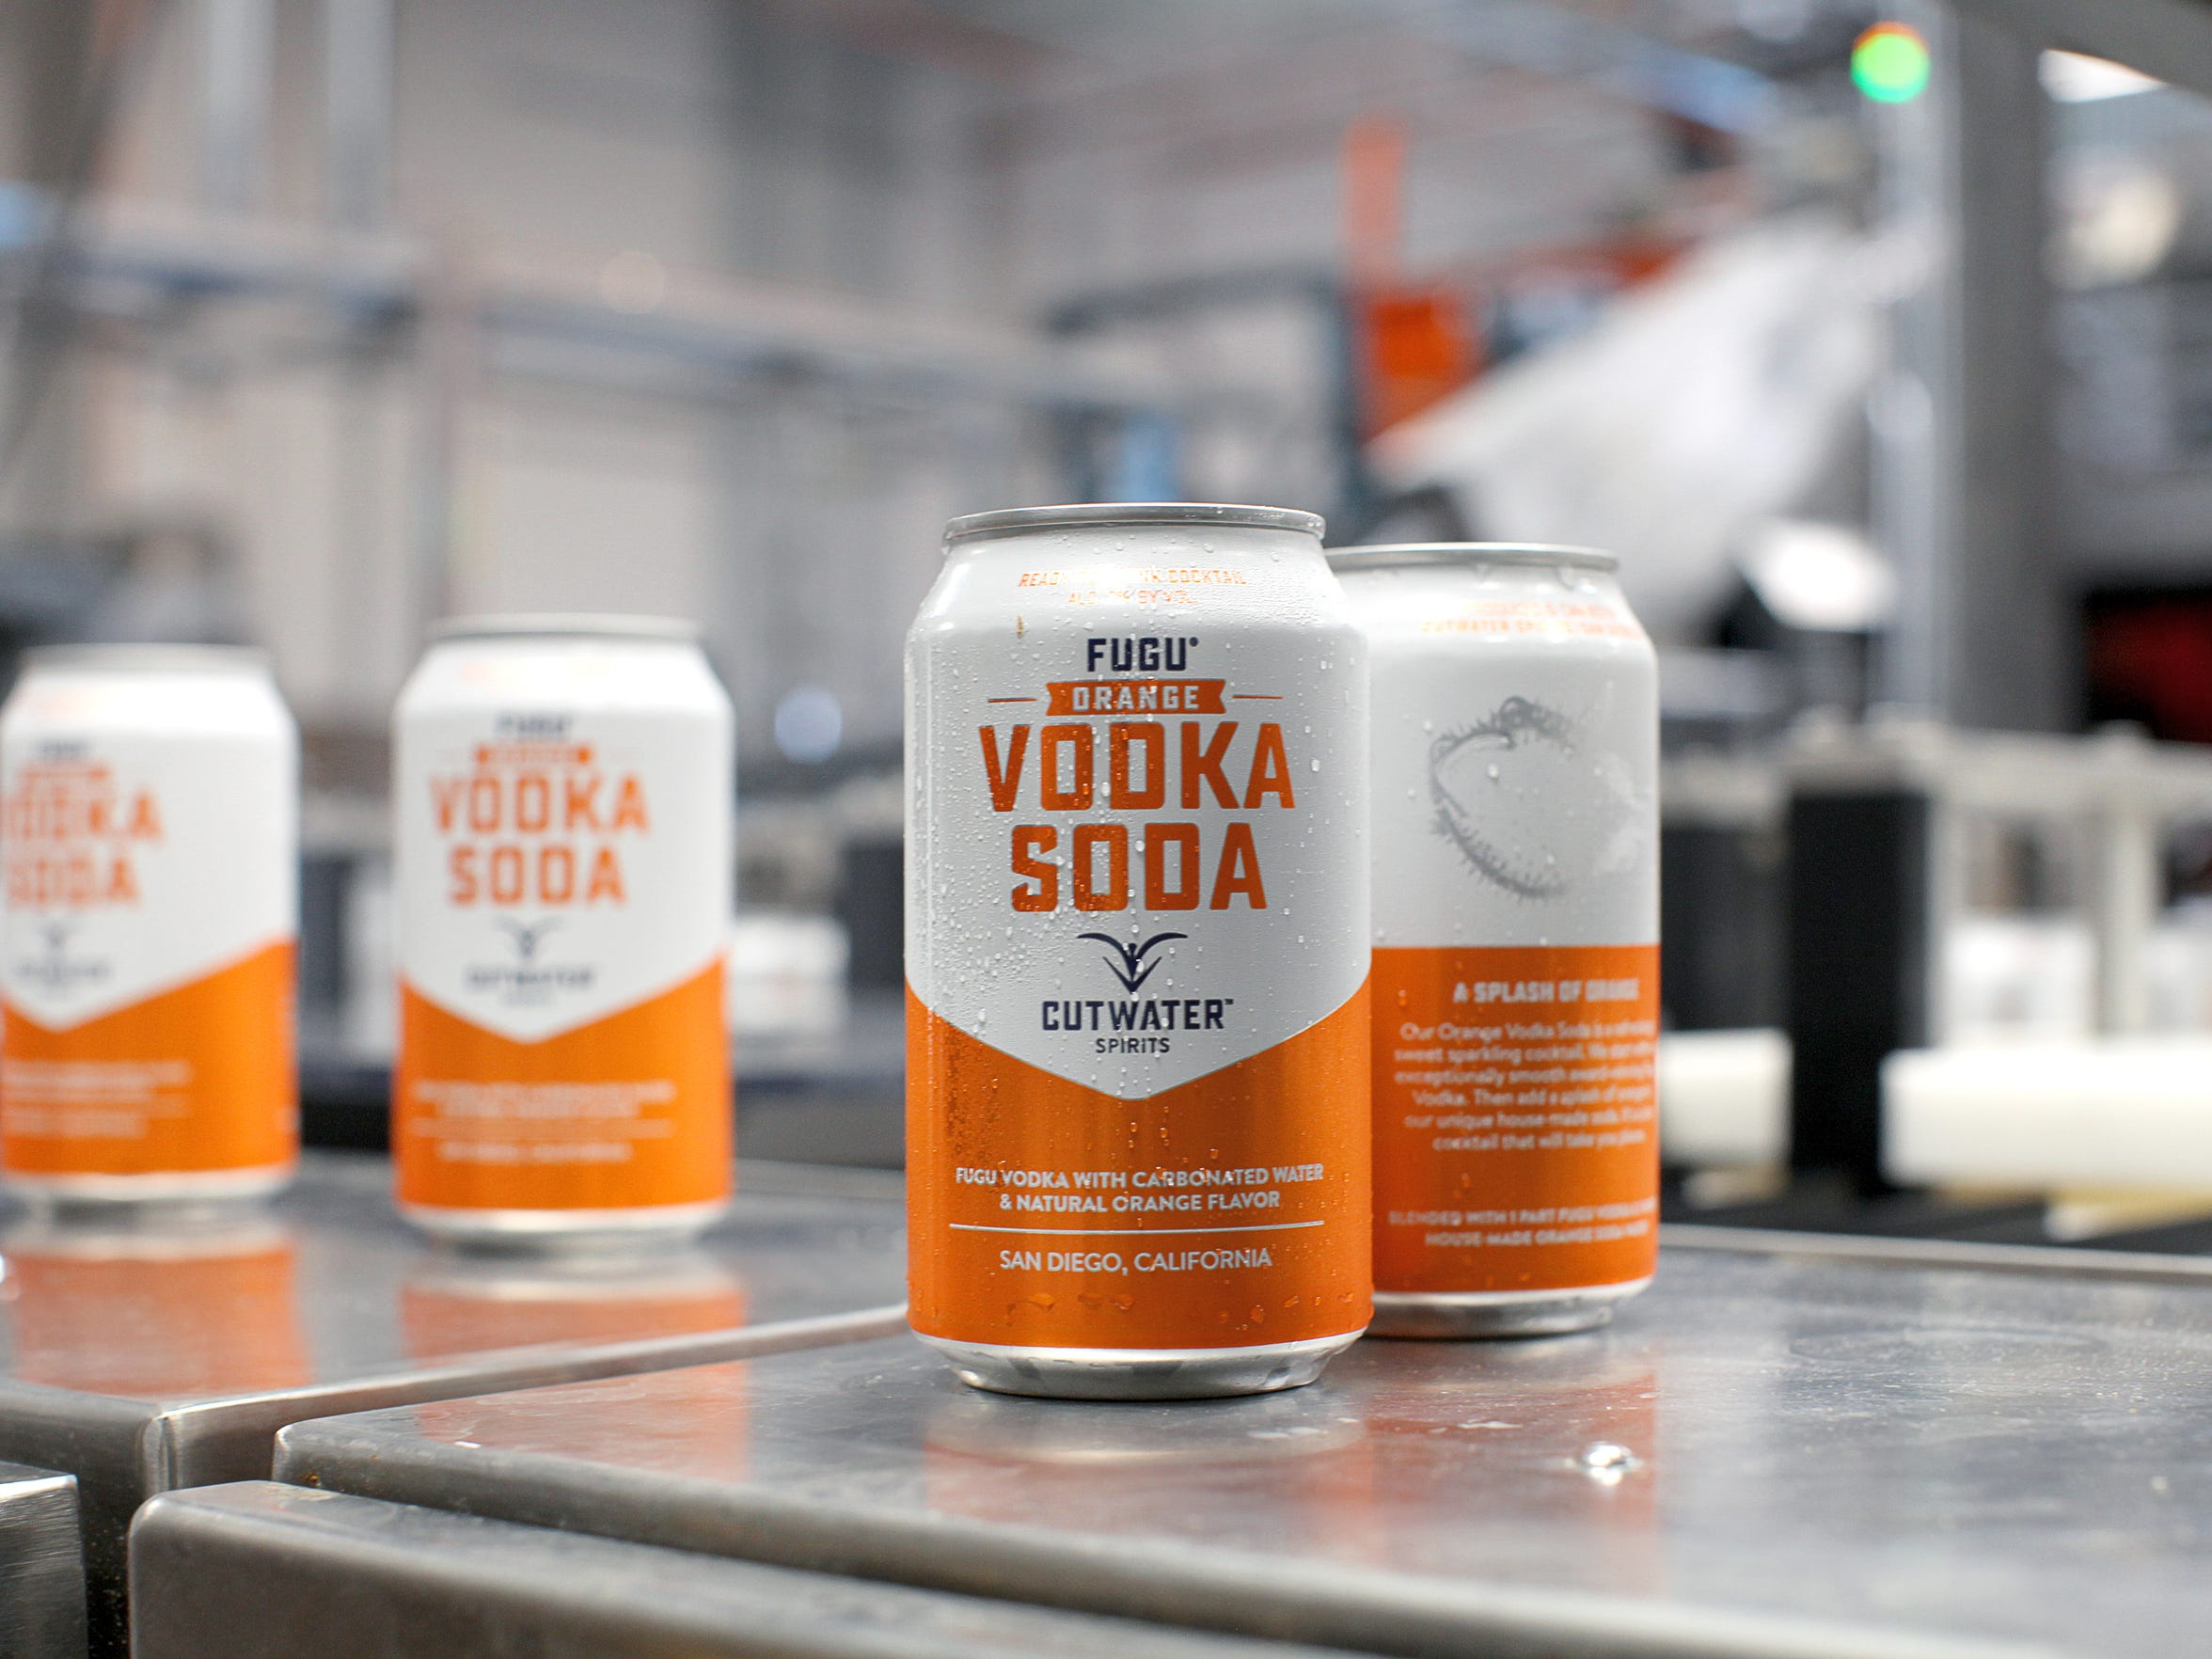 Orange Vodka Soda is one of 10 canned cocktails made